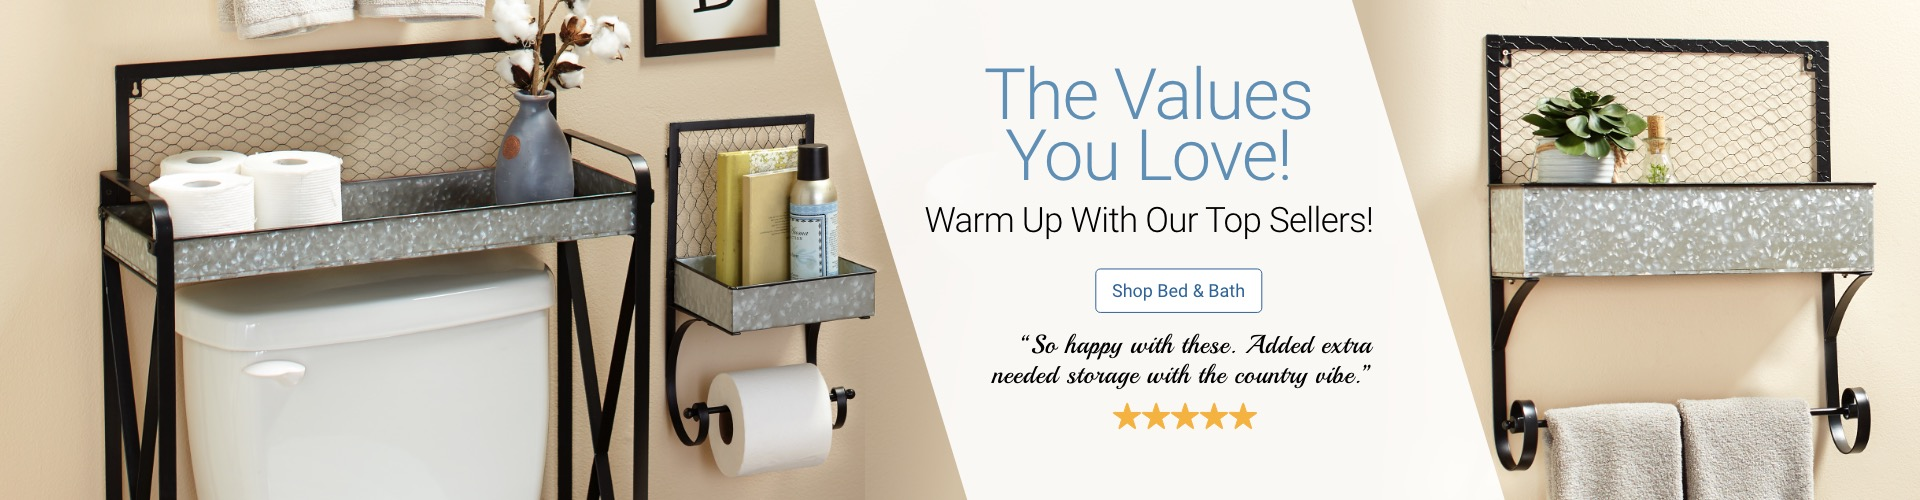 The Values You Love Galvanized Farmhouse Bathroom Collection Shop Now